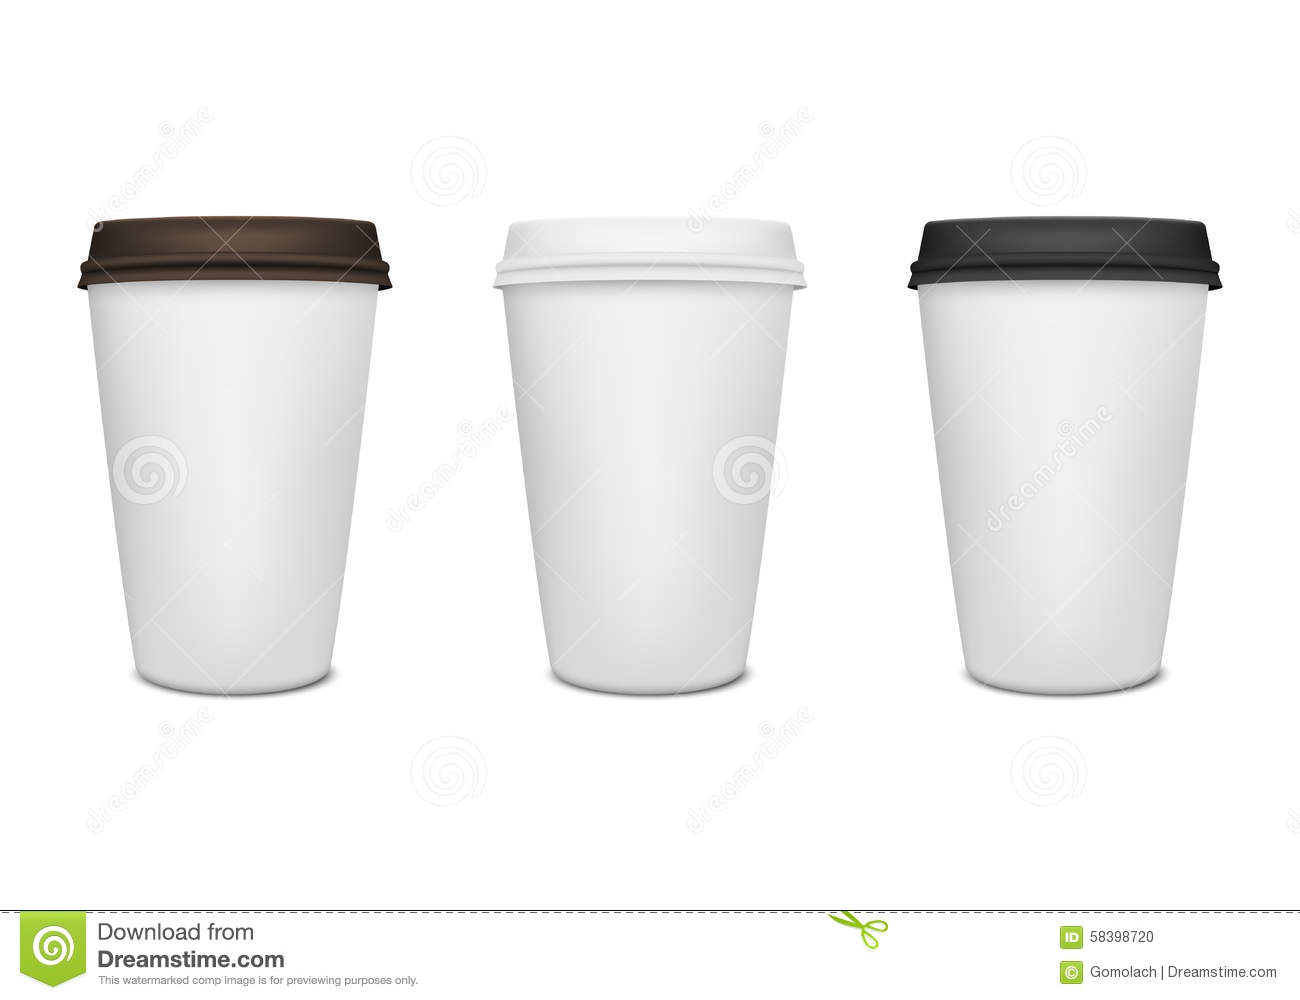 Research paper custom coffee cups with logo